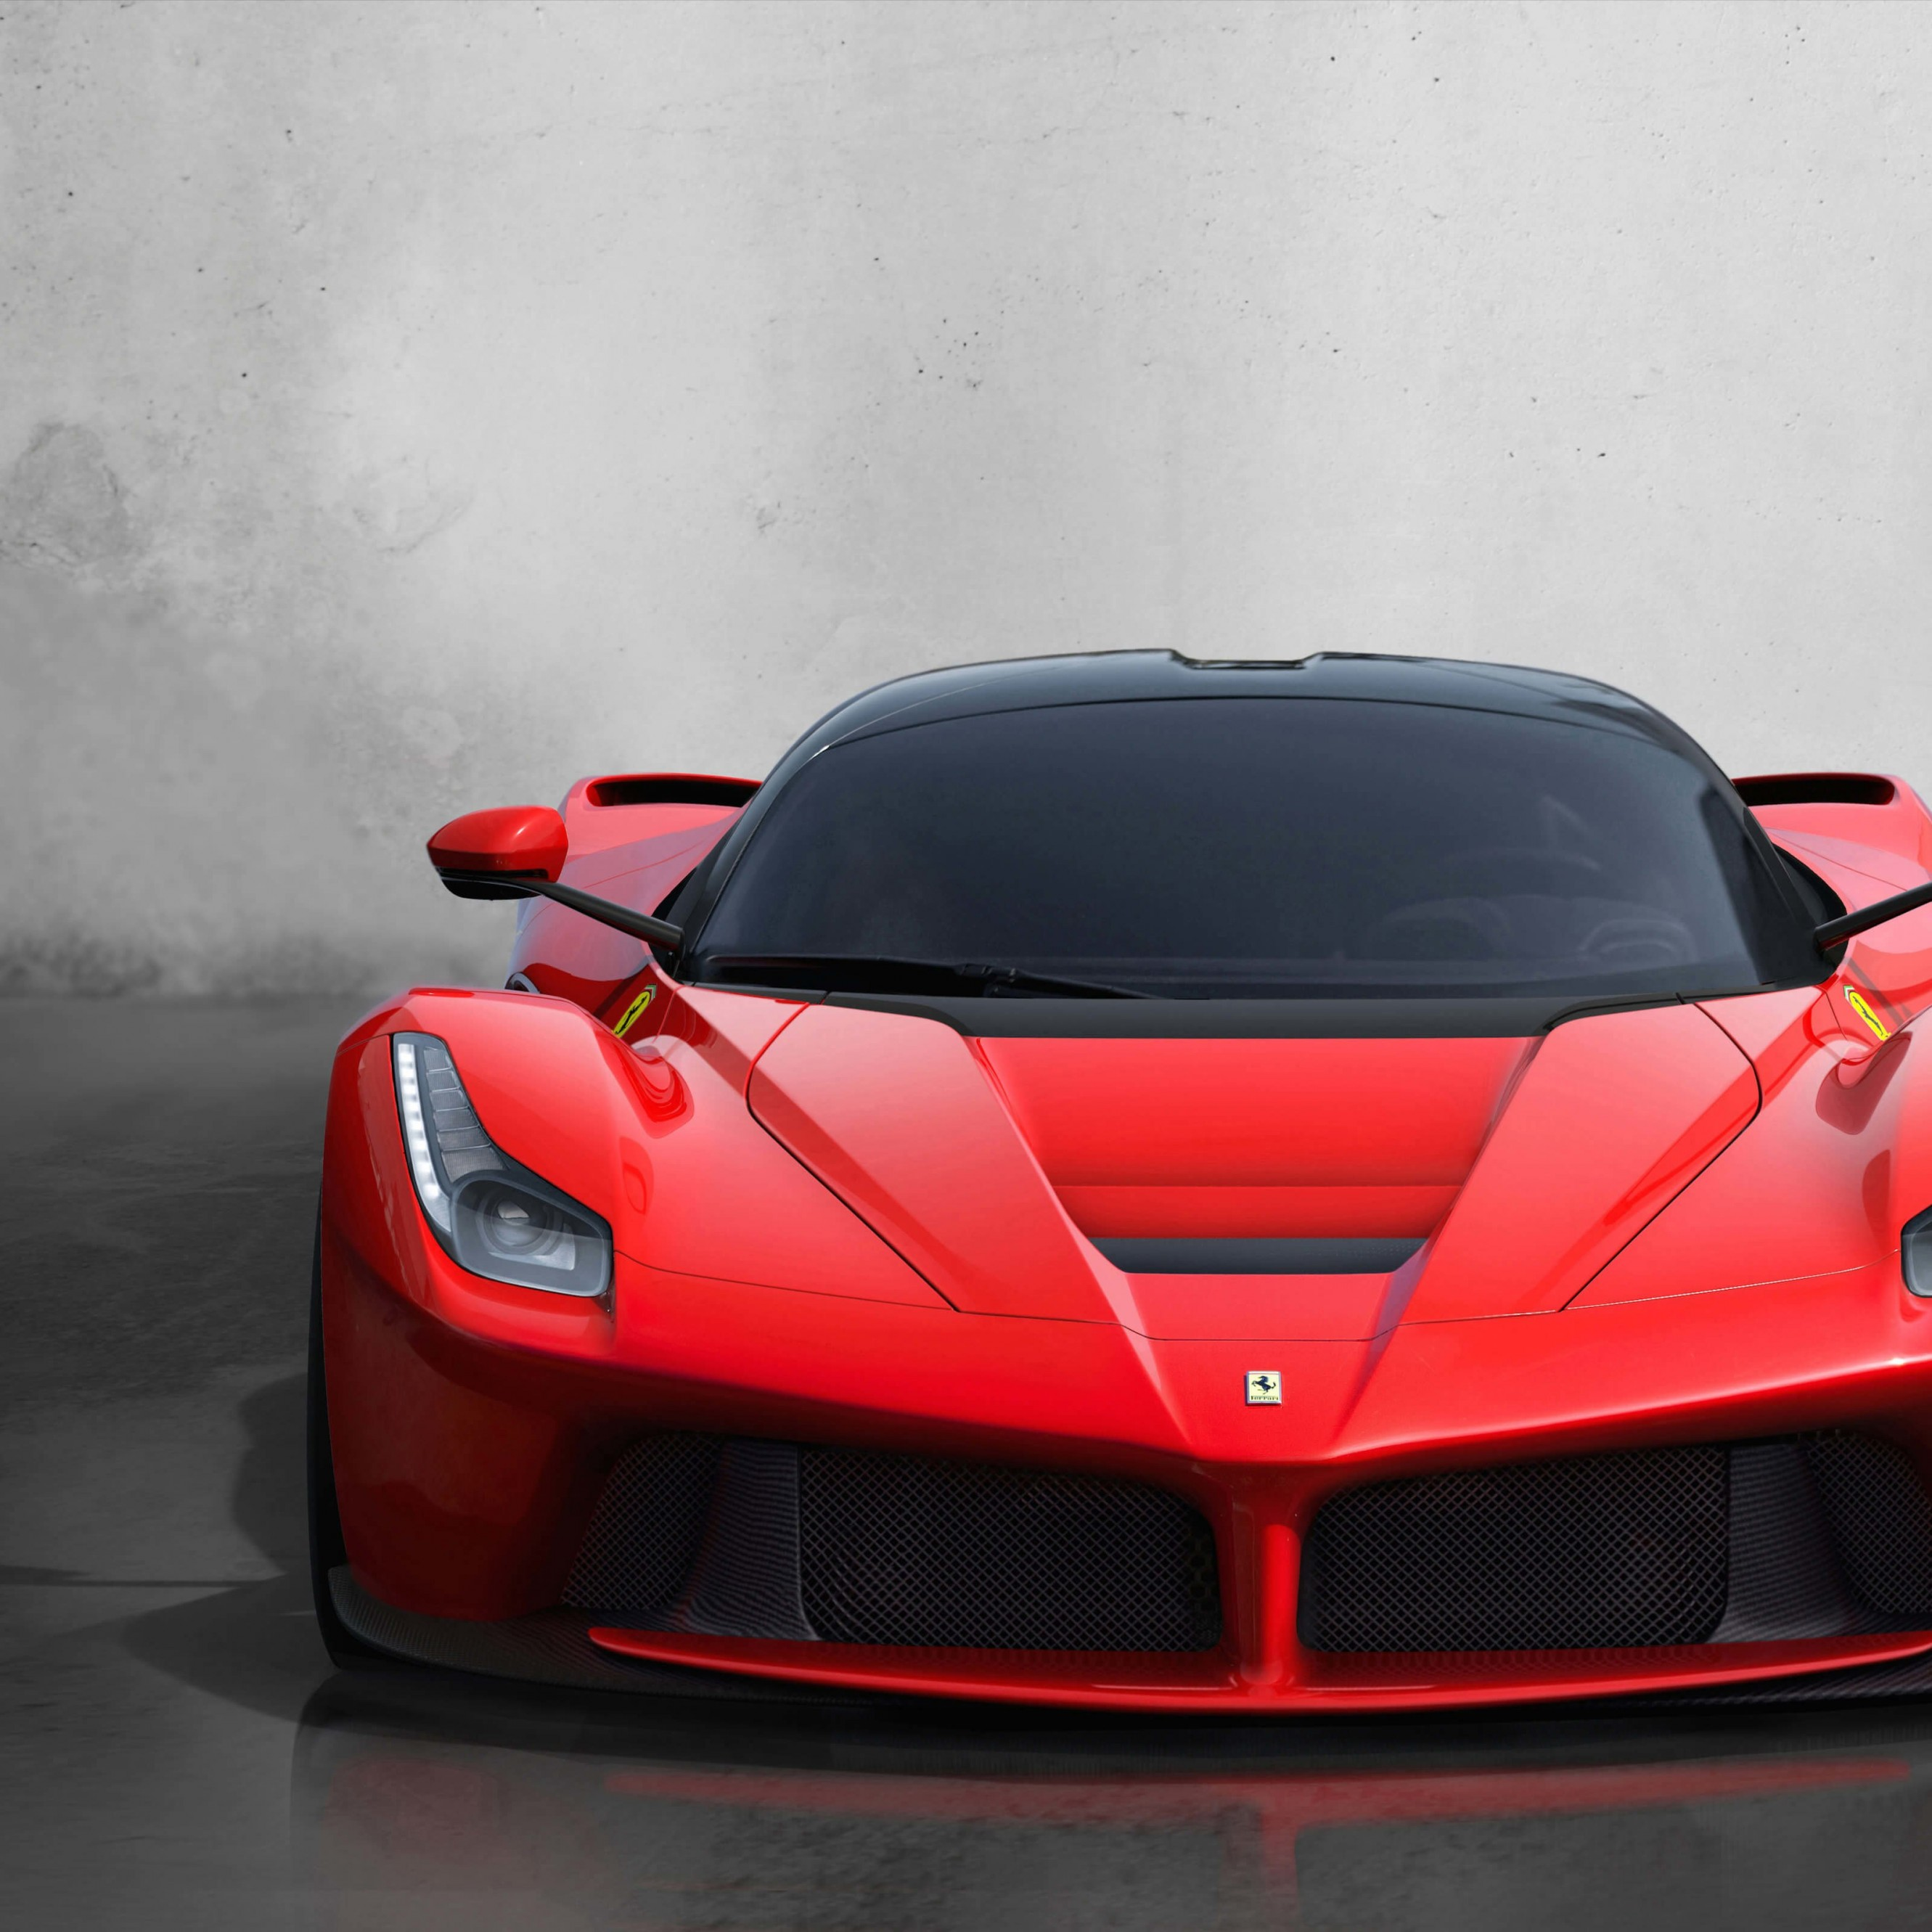 Download LaFerrari HD Wallpaper For IPhone 6 Plus